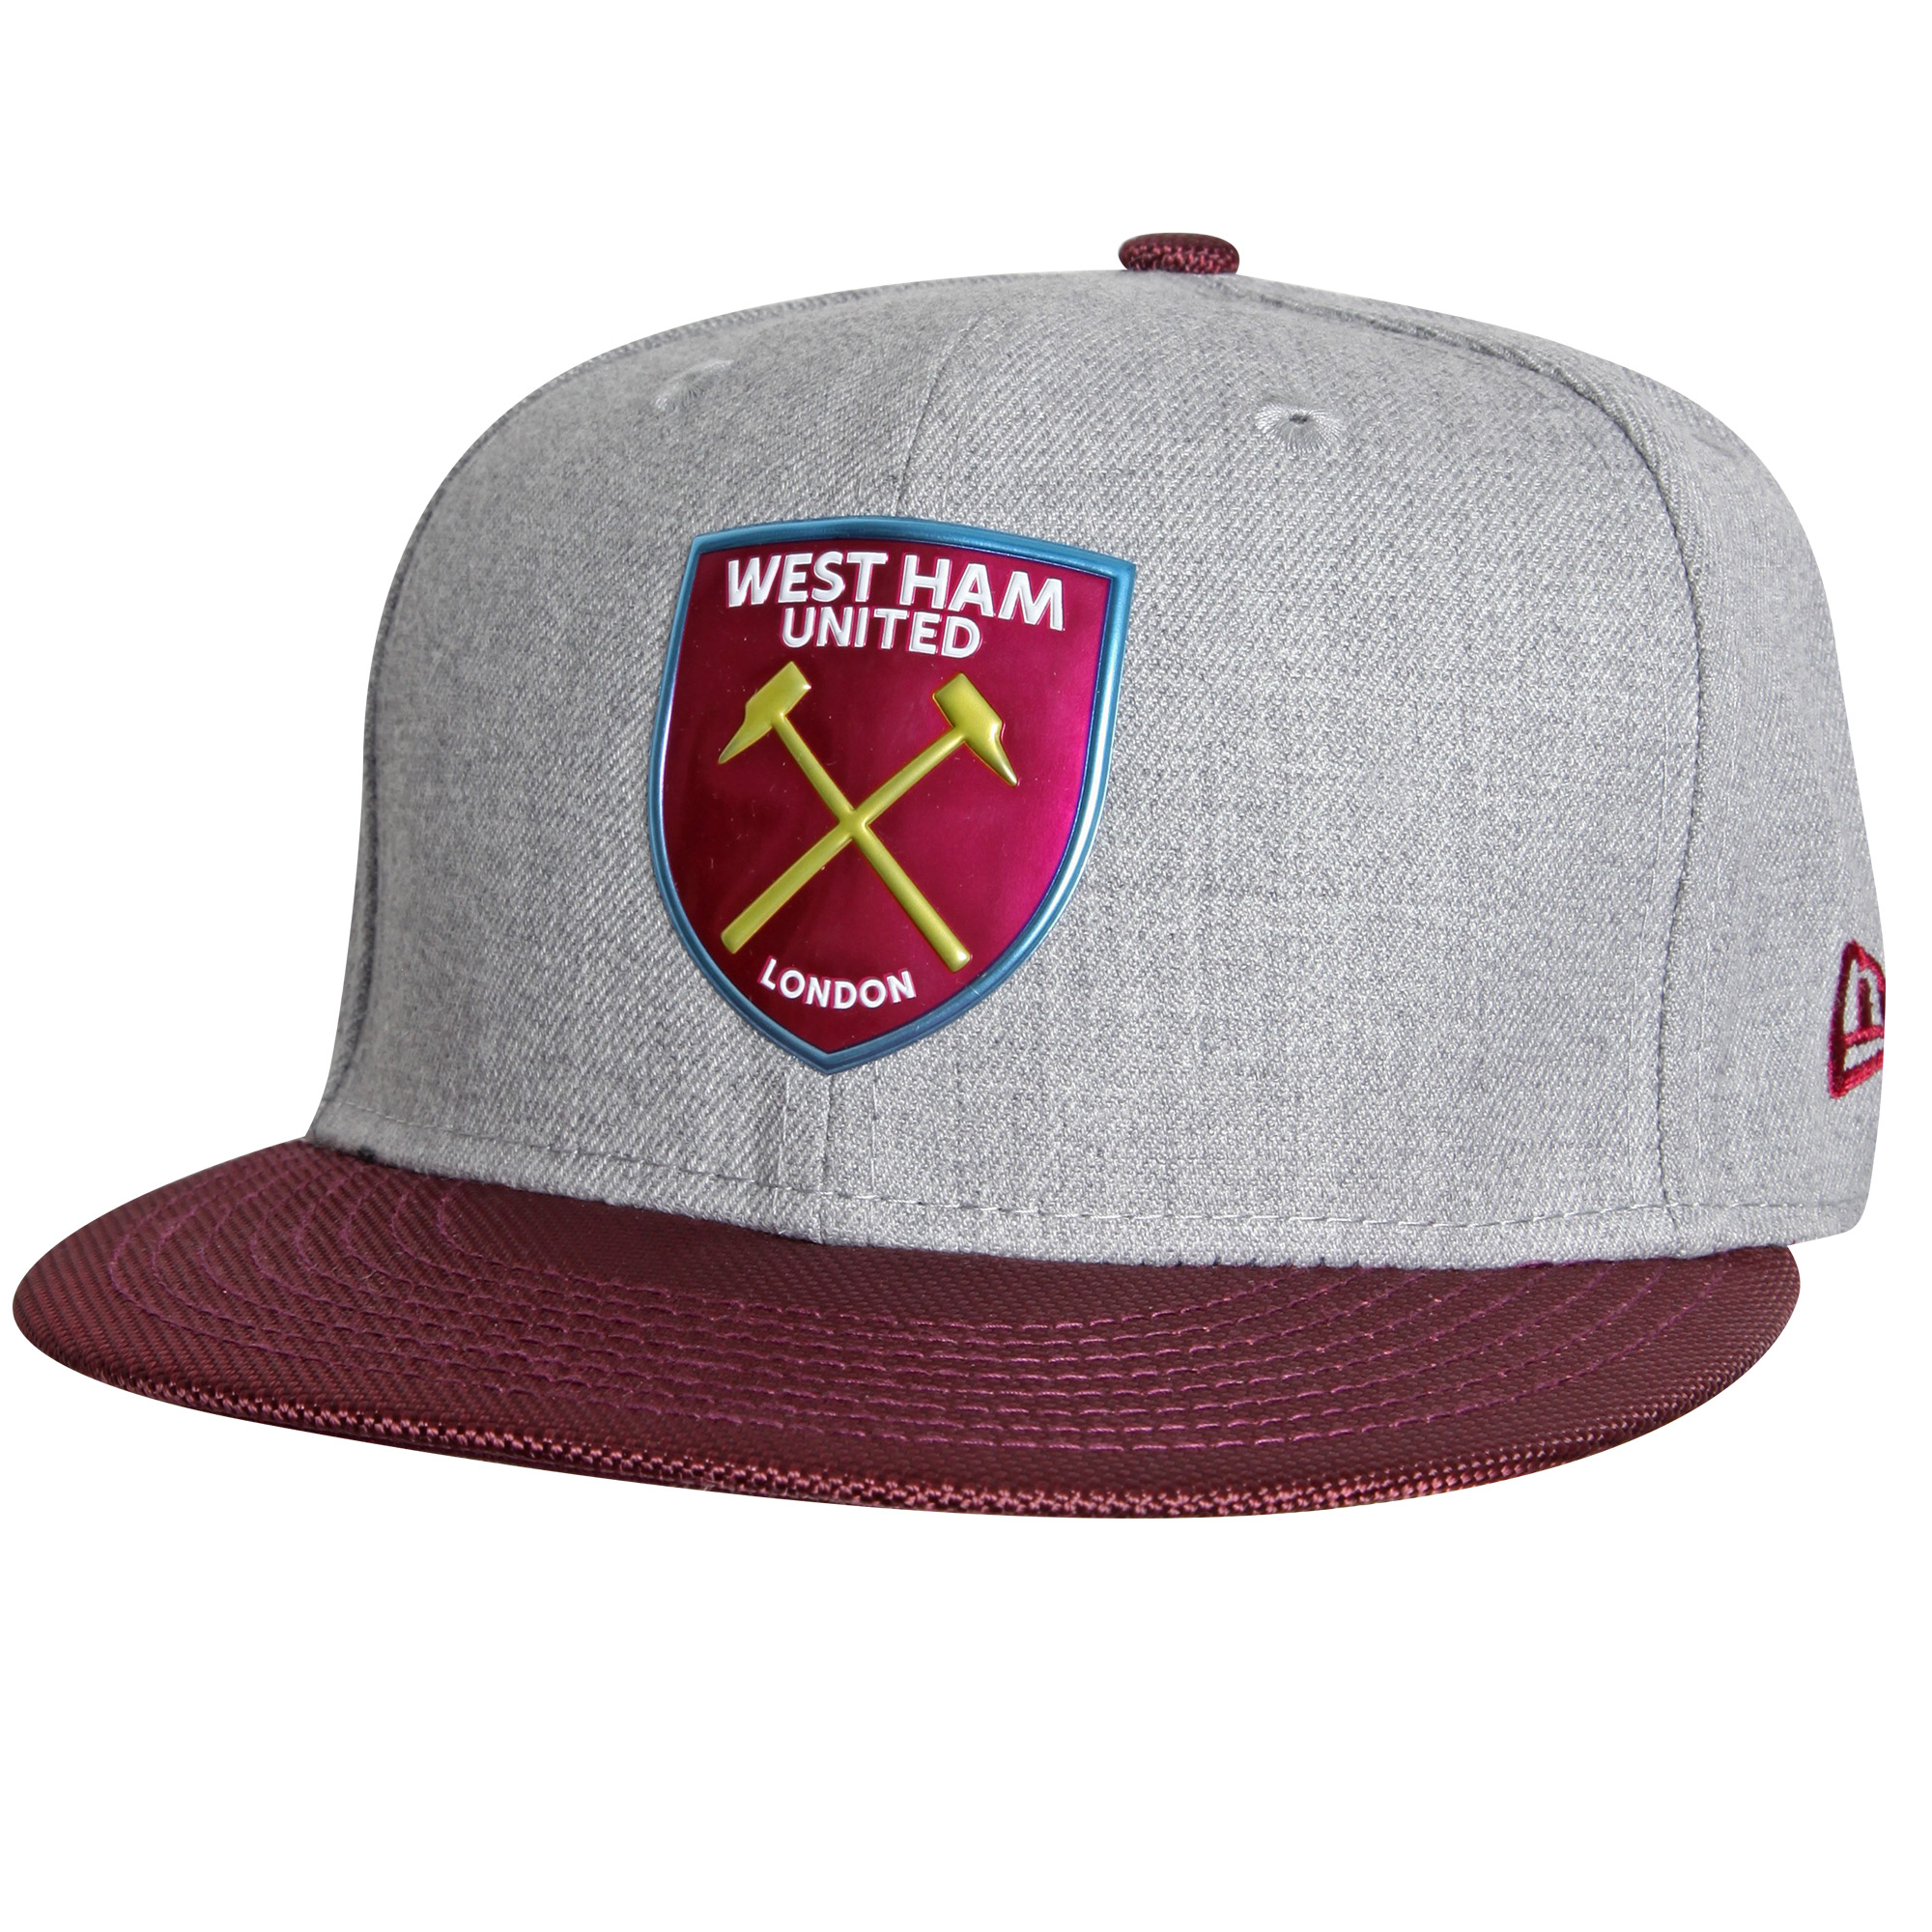 GREY/CLARET 59FIFTY FITTED CAP